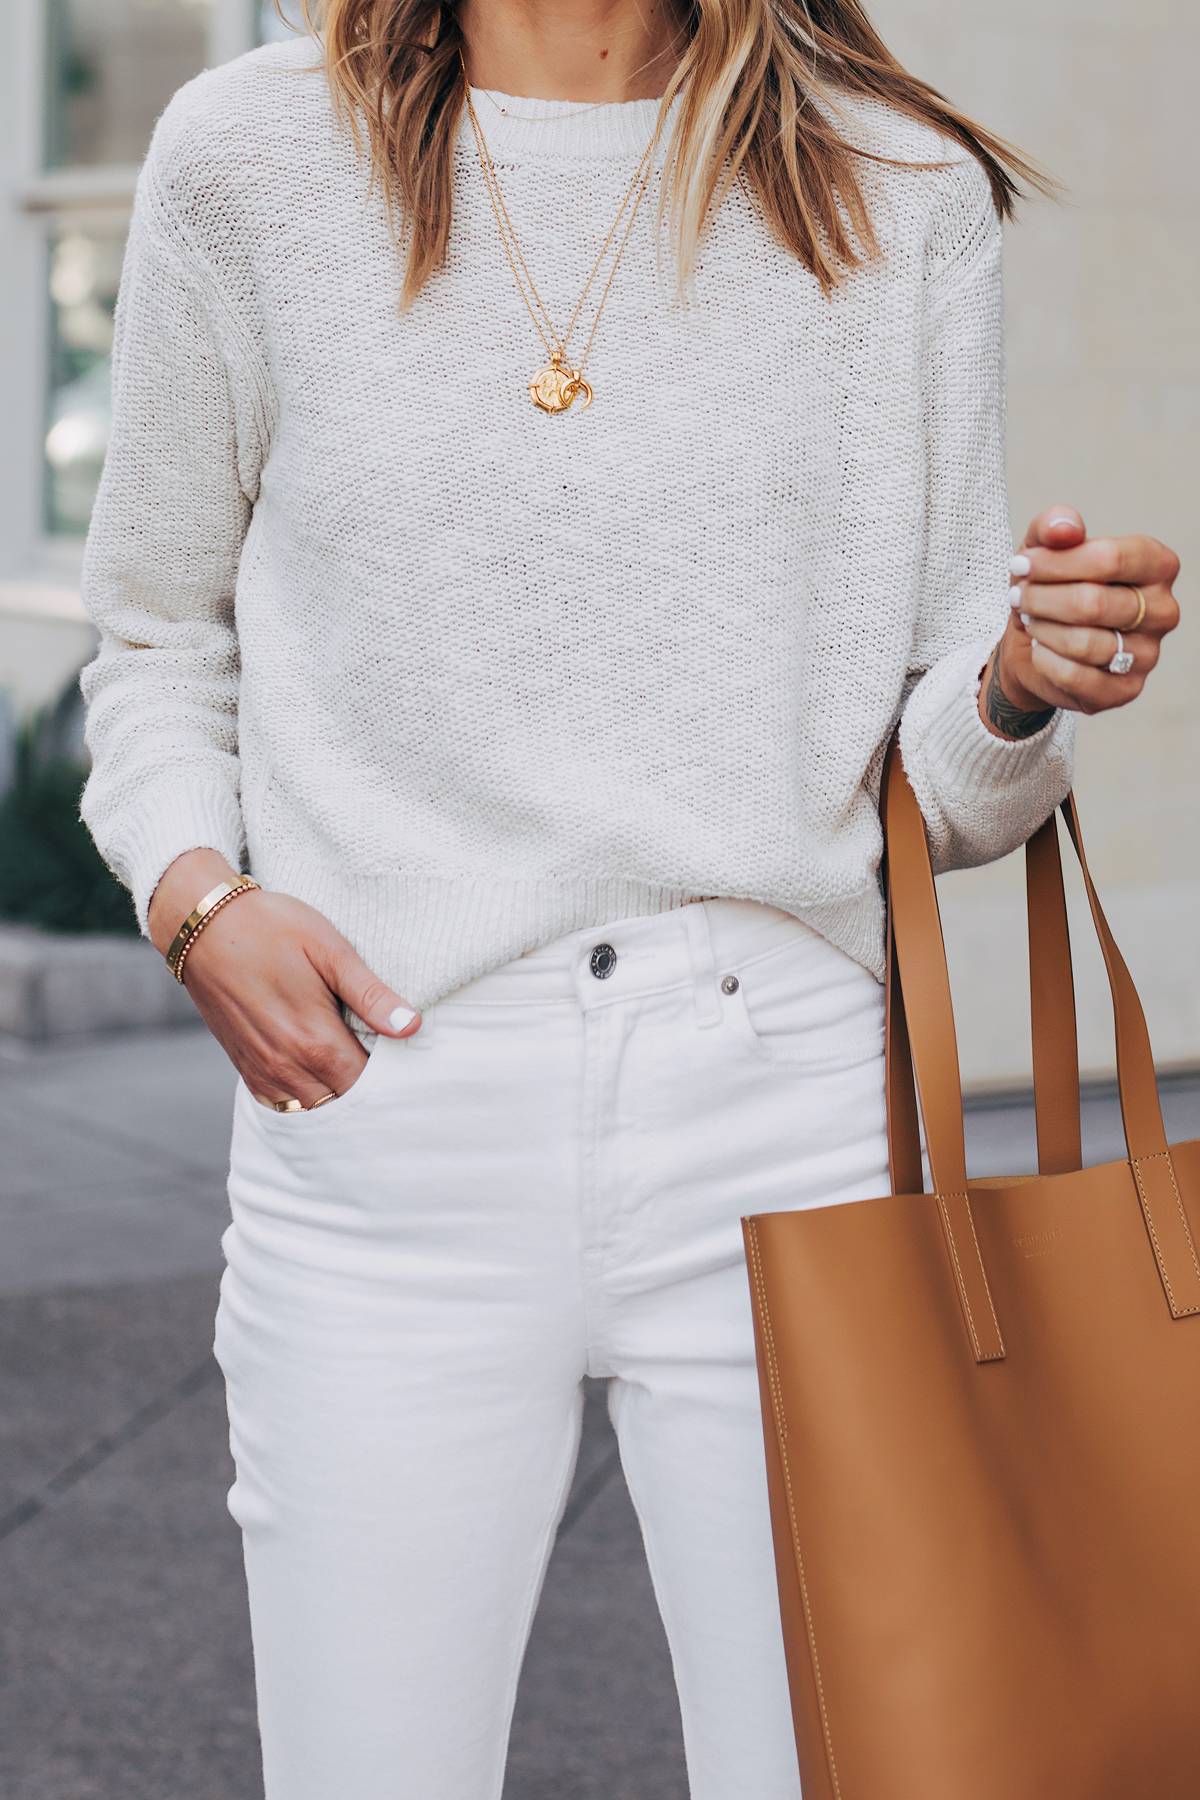 Blonde Woman Wearing Everlane Beige Cotton Linen Sweater White Jeans Tan Tote Fashion Jackson San Diego Fashion Blogger Street Style